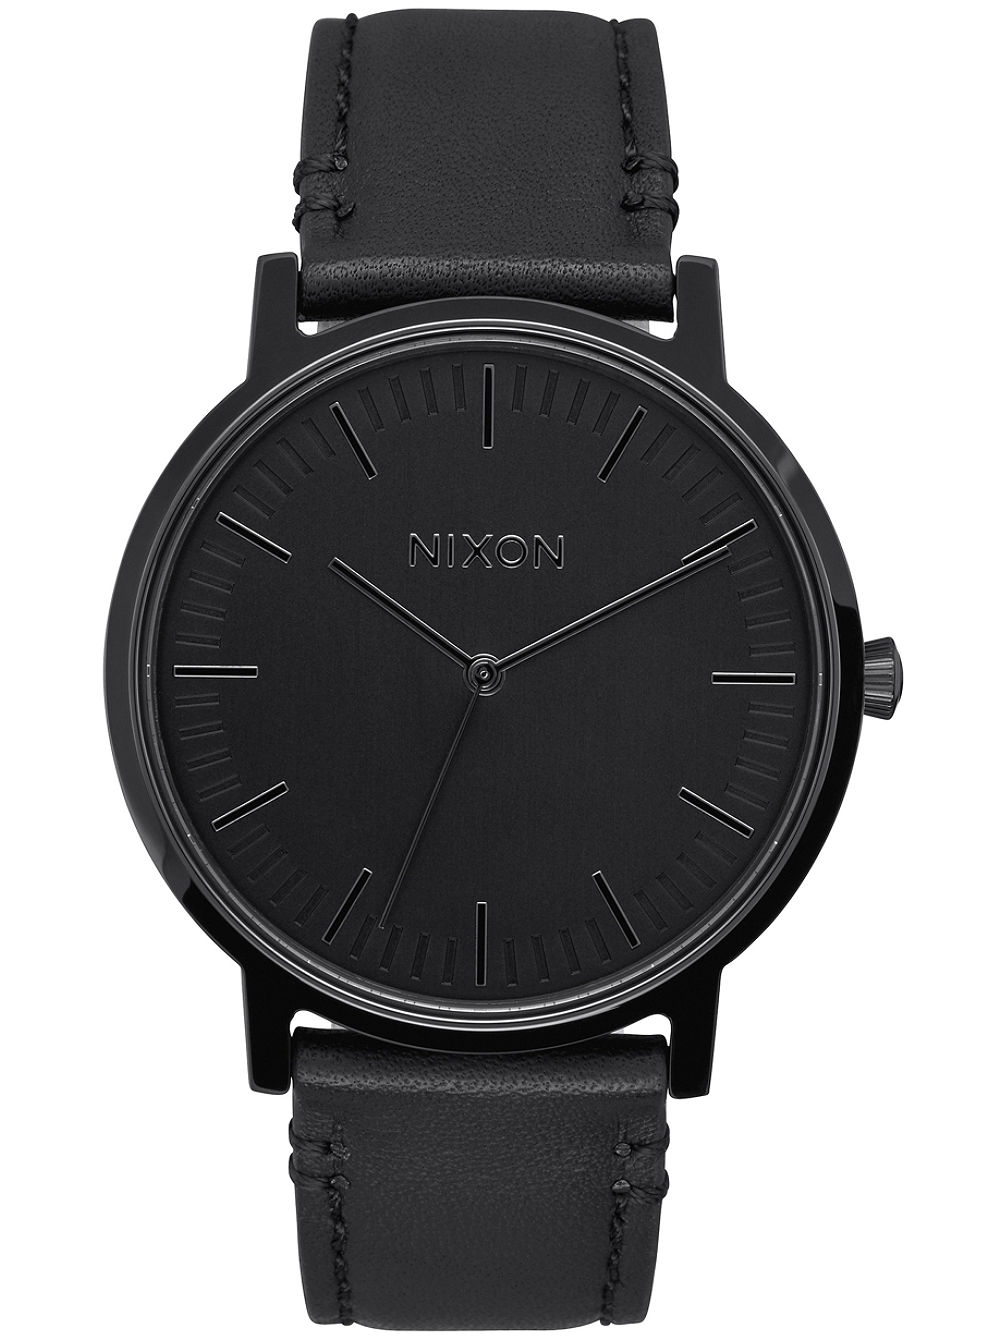 The Porter Leather Uhr